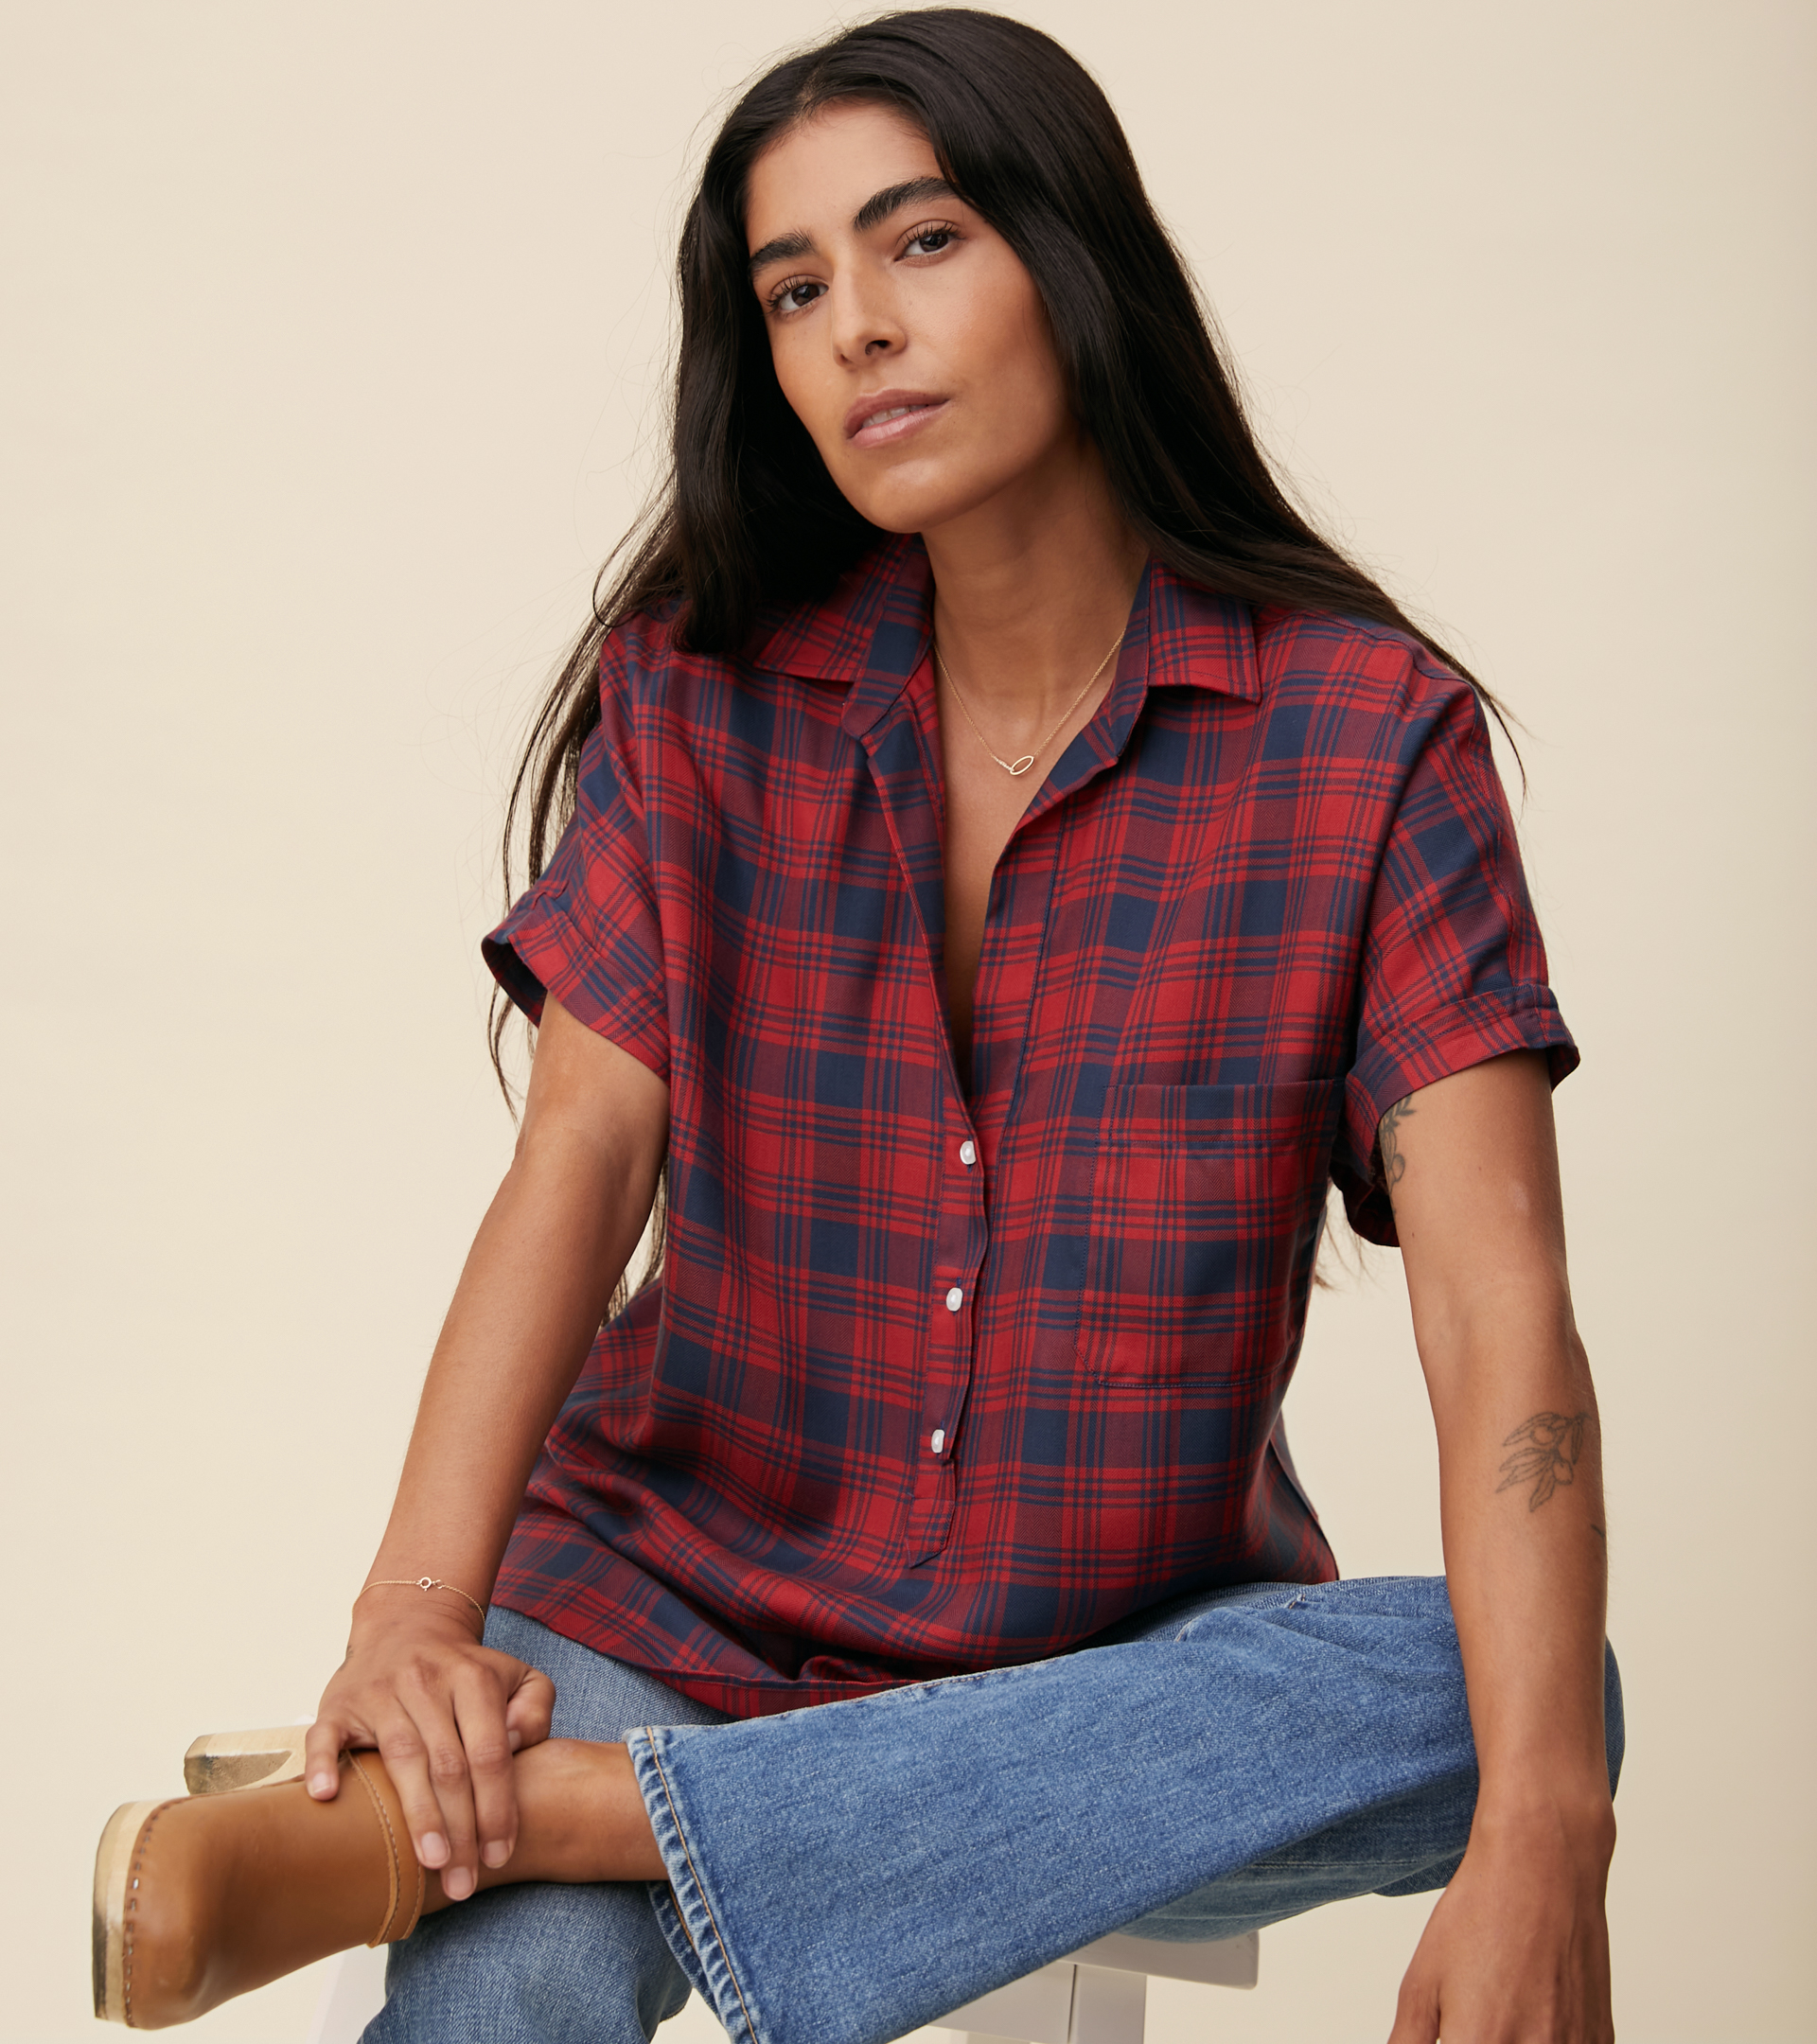 Image of The Artist Short Sleeve Shirt Red and Navy Plaid, Liquid Flannel